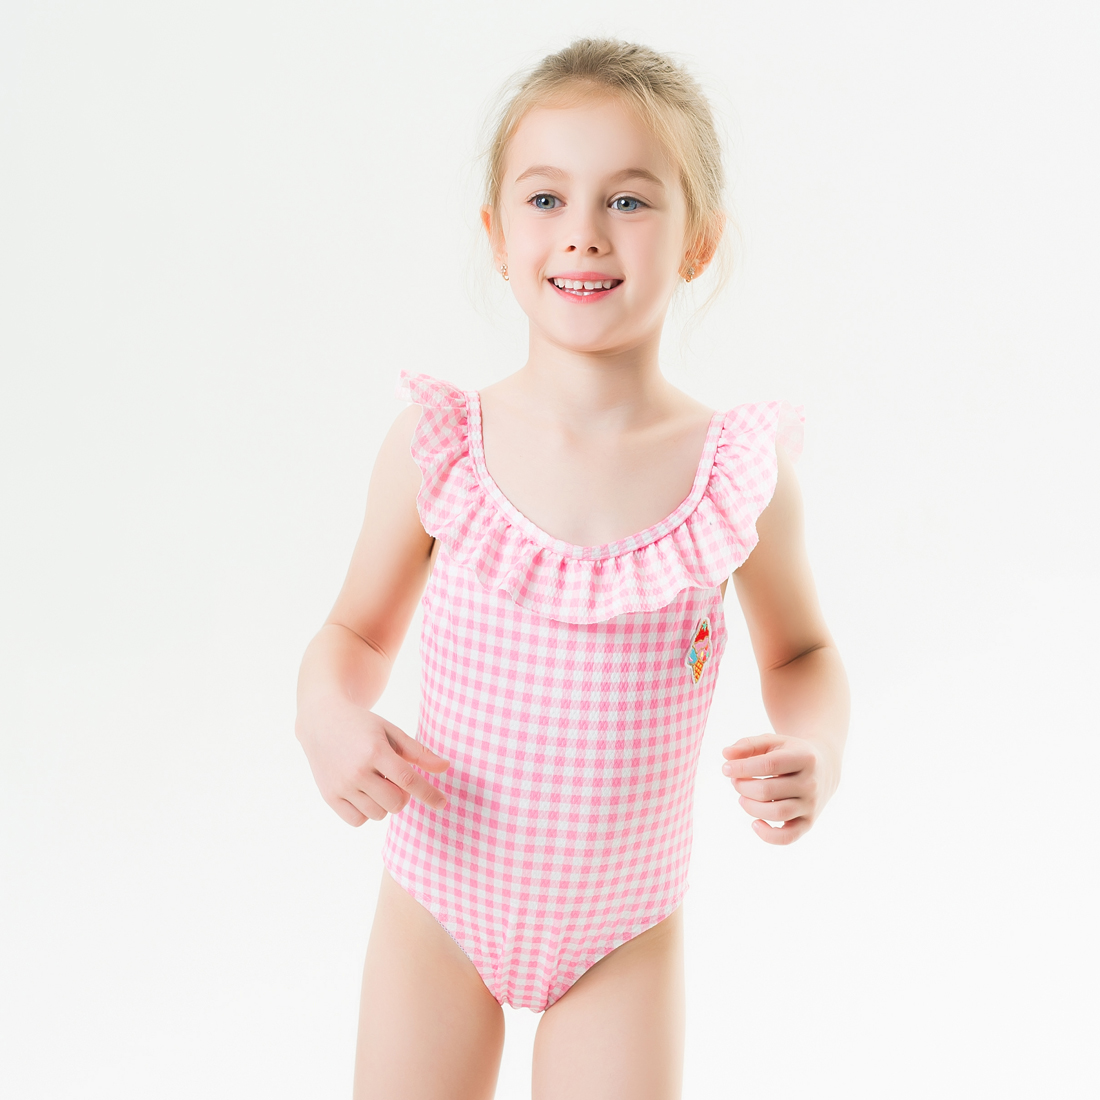 2020 New Baby Girl Swimsuit One Piece Swimwear Classic Style Bodysuit Pink Geometric Swimsuit For Girl Ice-cream Bathing Suit